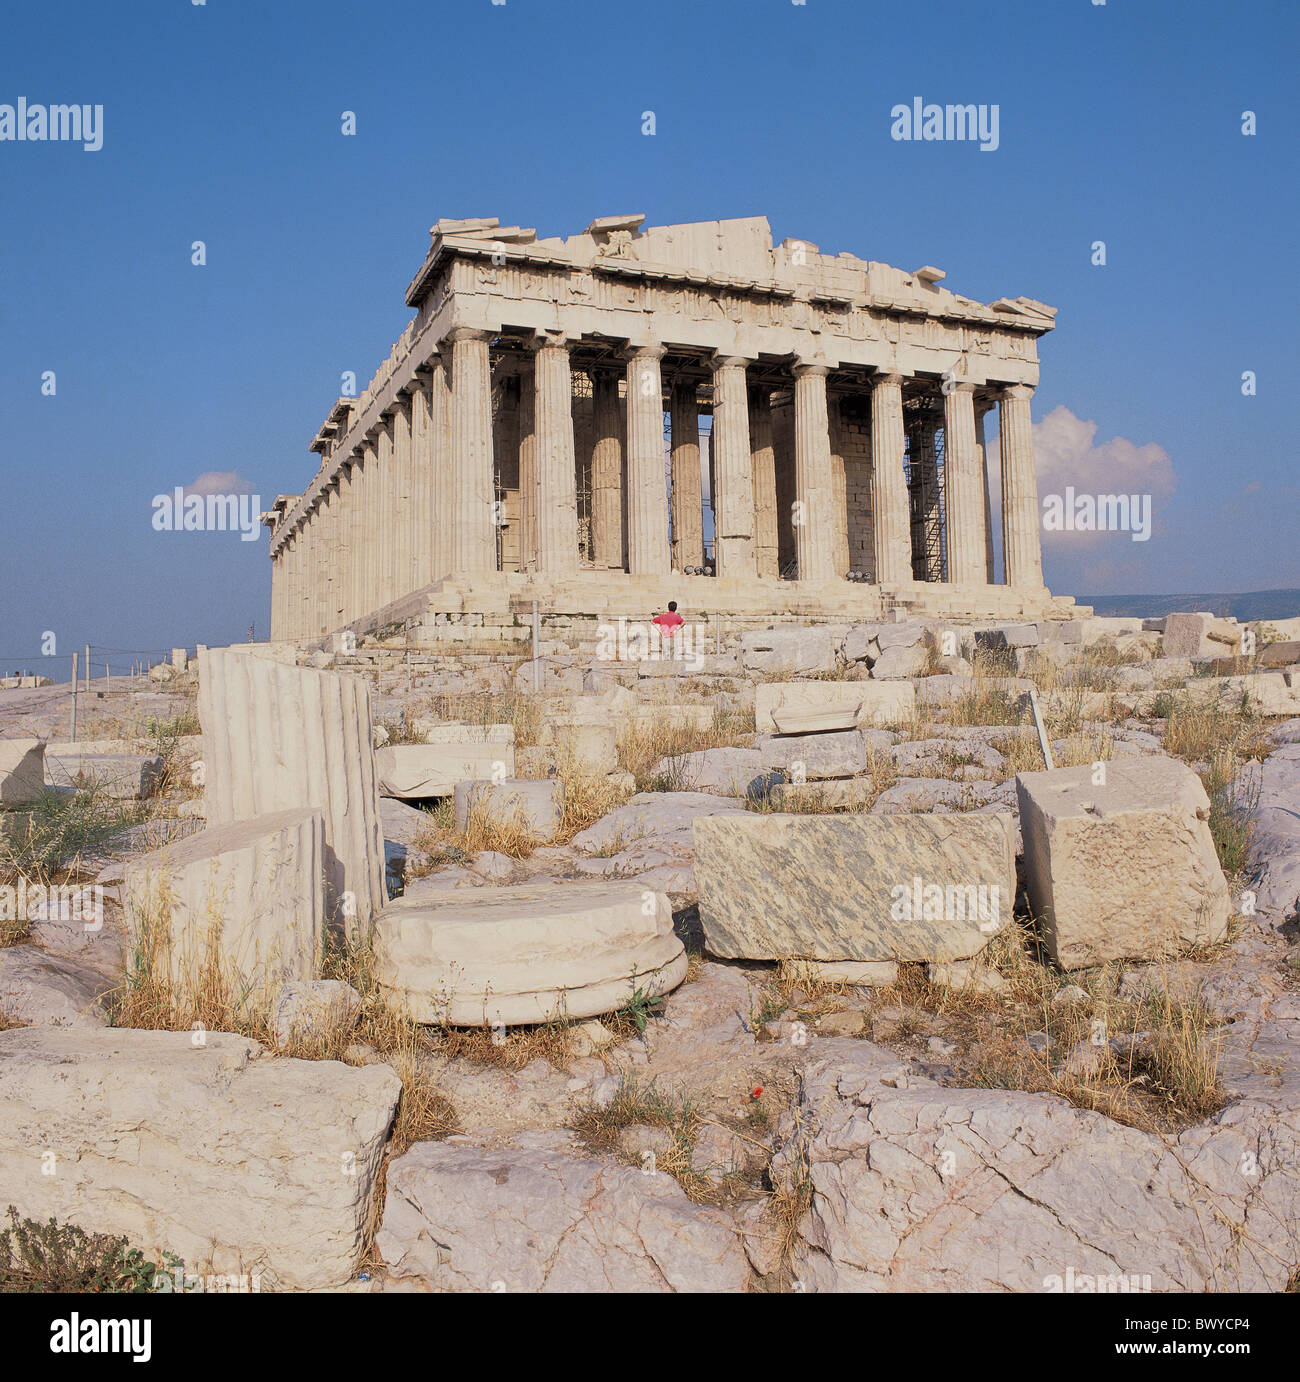 Greece Athens Acropolis Parthenon Antique Ancient World Antiquity